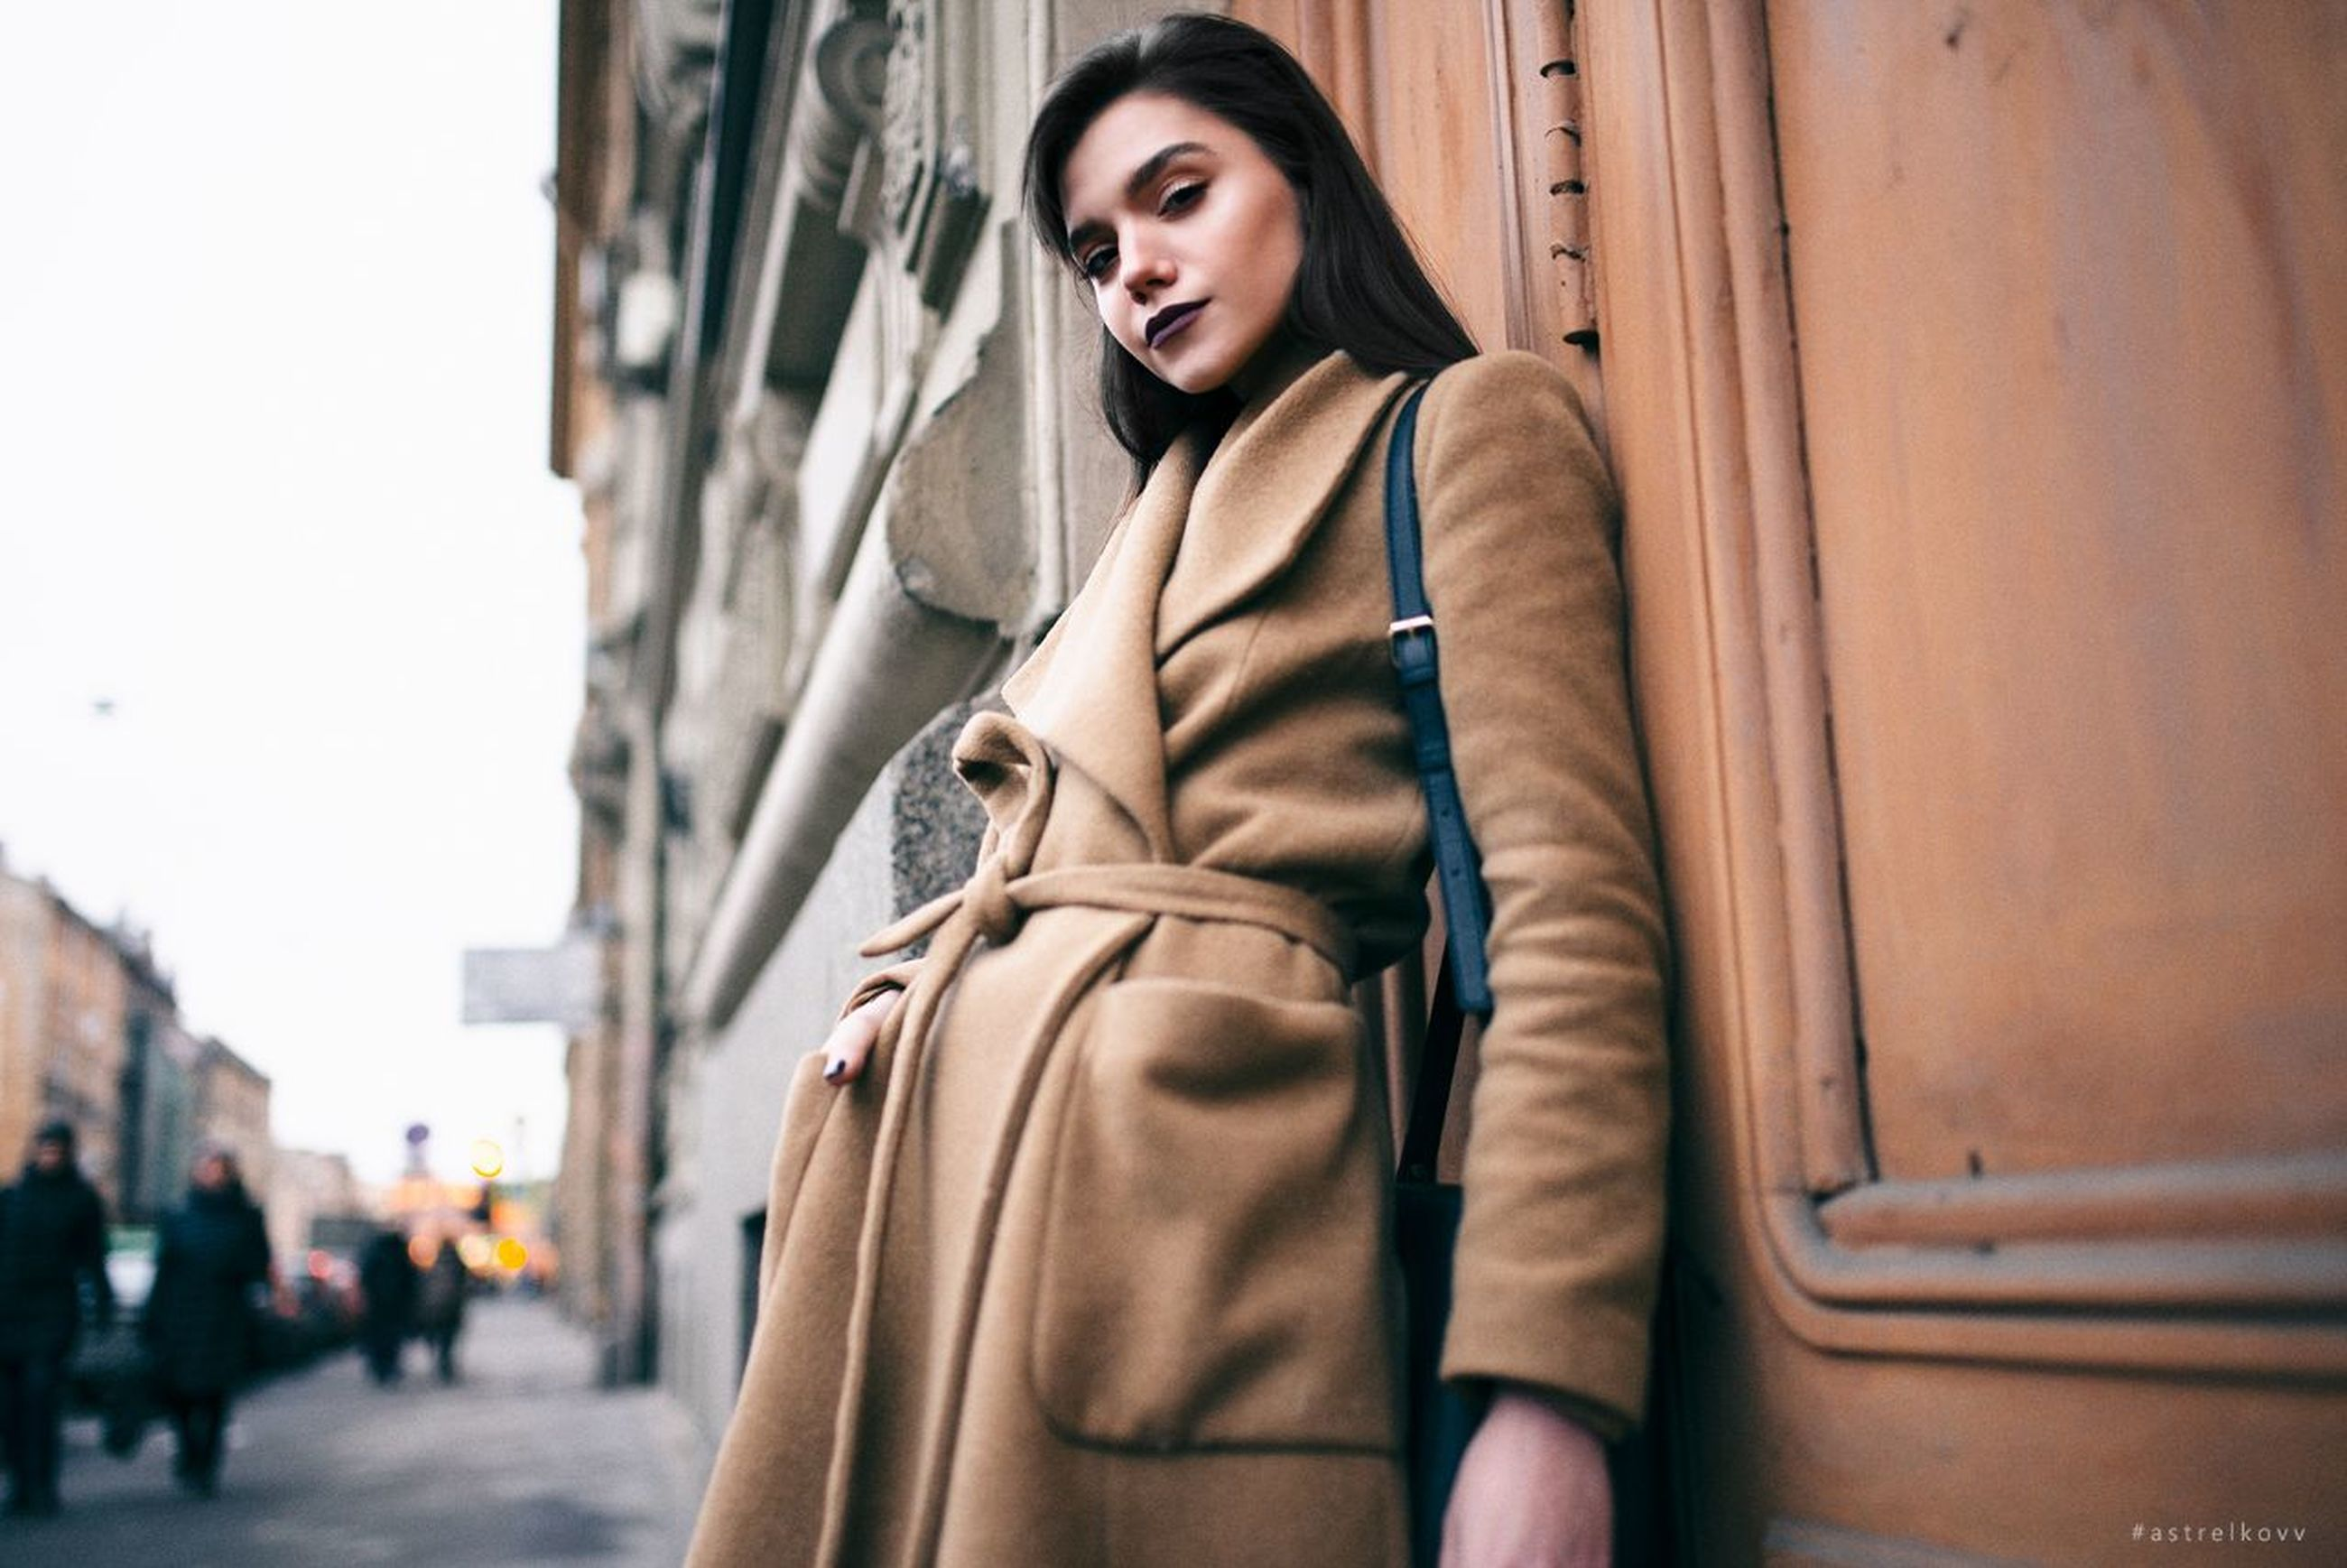 city, one person, women, young adult, beautiful woman, outdoors, standing, real people, one woman only, young women, adult, day, beauty, beautiful people, portrait, one young woman only, adults only, only women, people